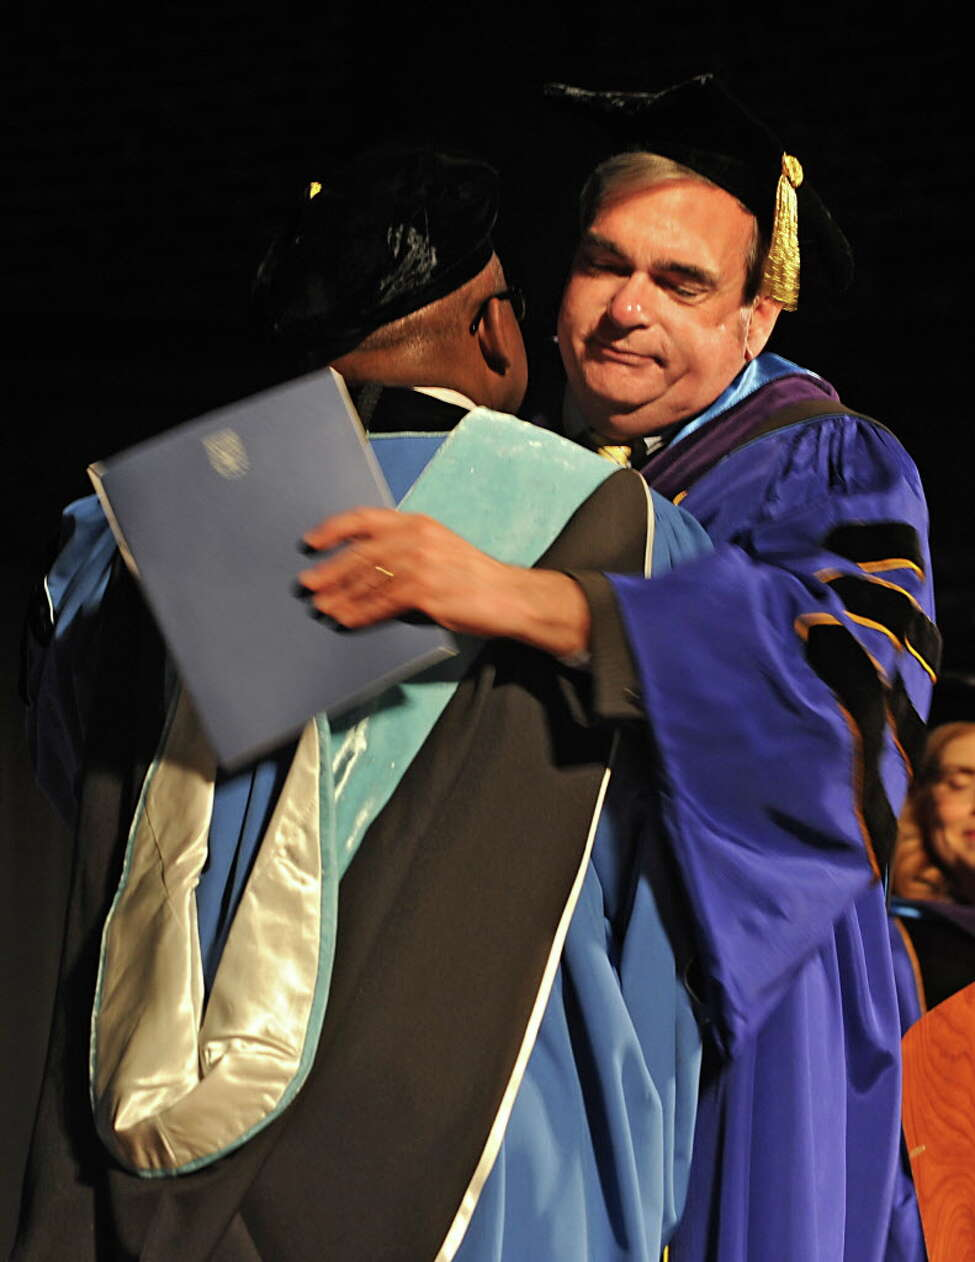 Schenectady Mayor Gary McCarthy, right, hugs Steady H. Moono during Moono's inauguration as Schenectady County Community College's seventh president at Proctors on Friday, May 13, 2016 in Schenectady, N.Y. (Lori Van Buren / Times Union)